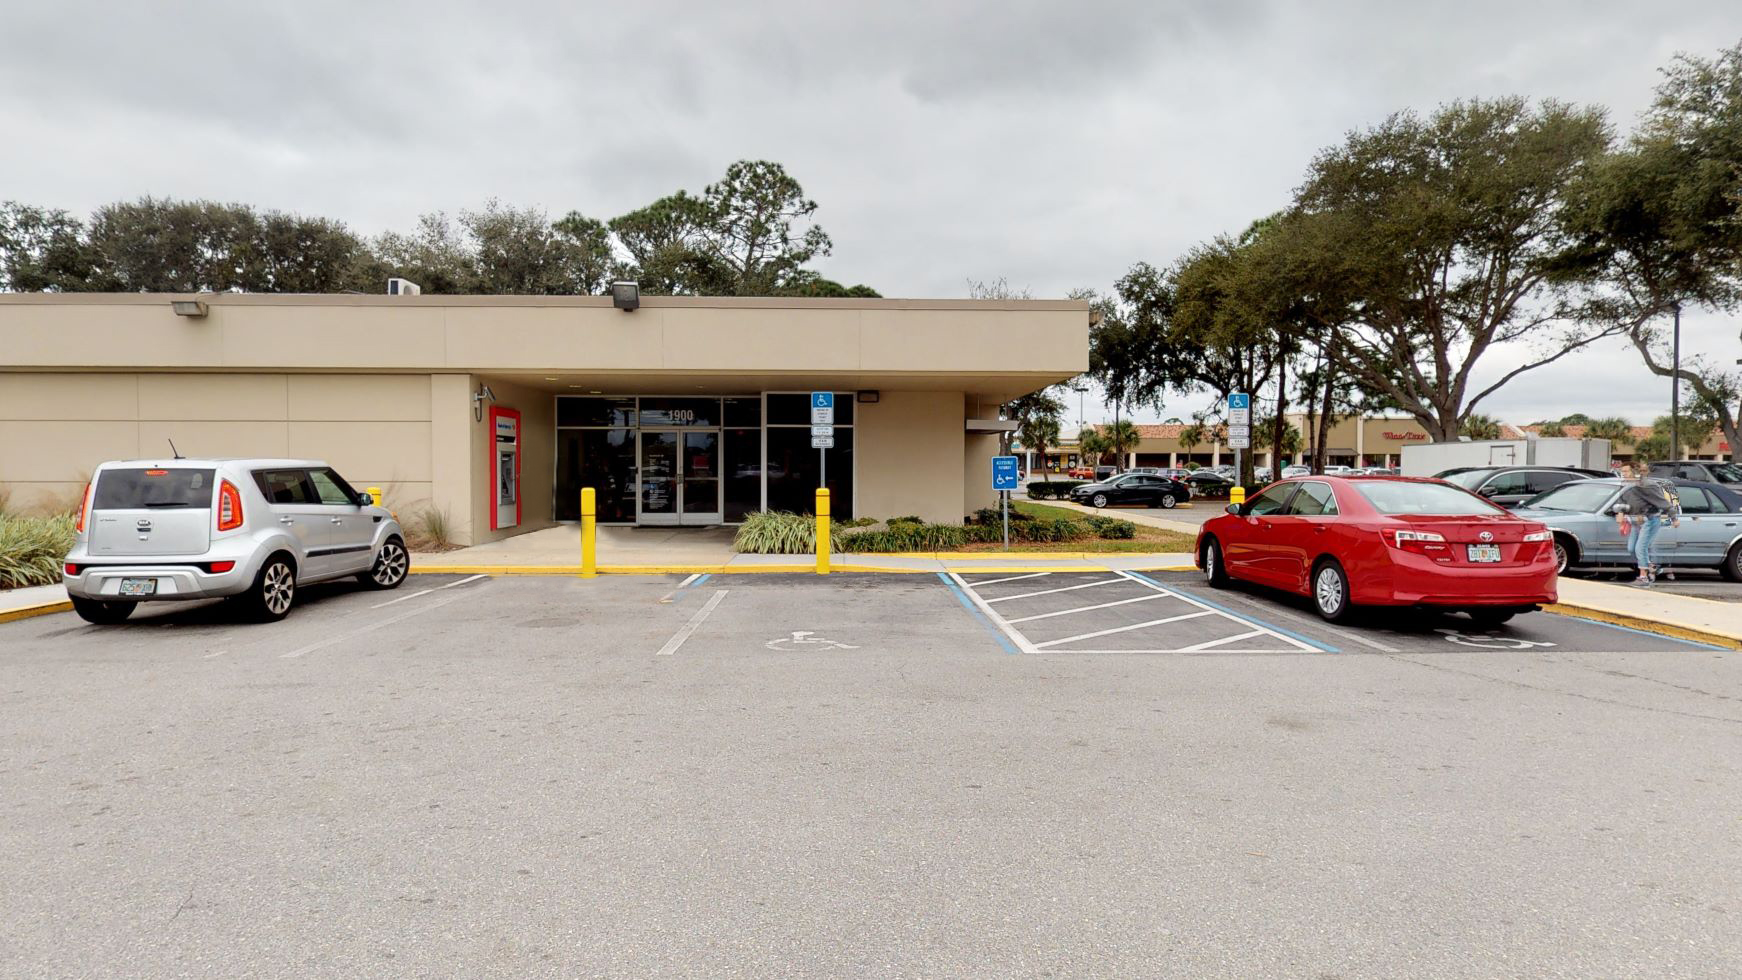 Bank of America financial center with walk-up ATM | 1900 S Ridgewood Ave, Edgewater, FL 32141